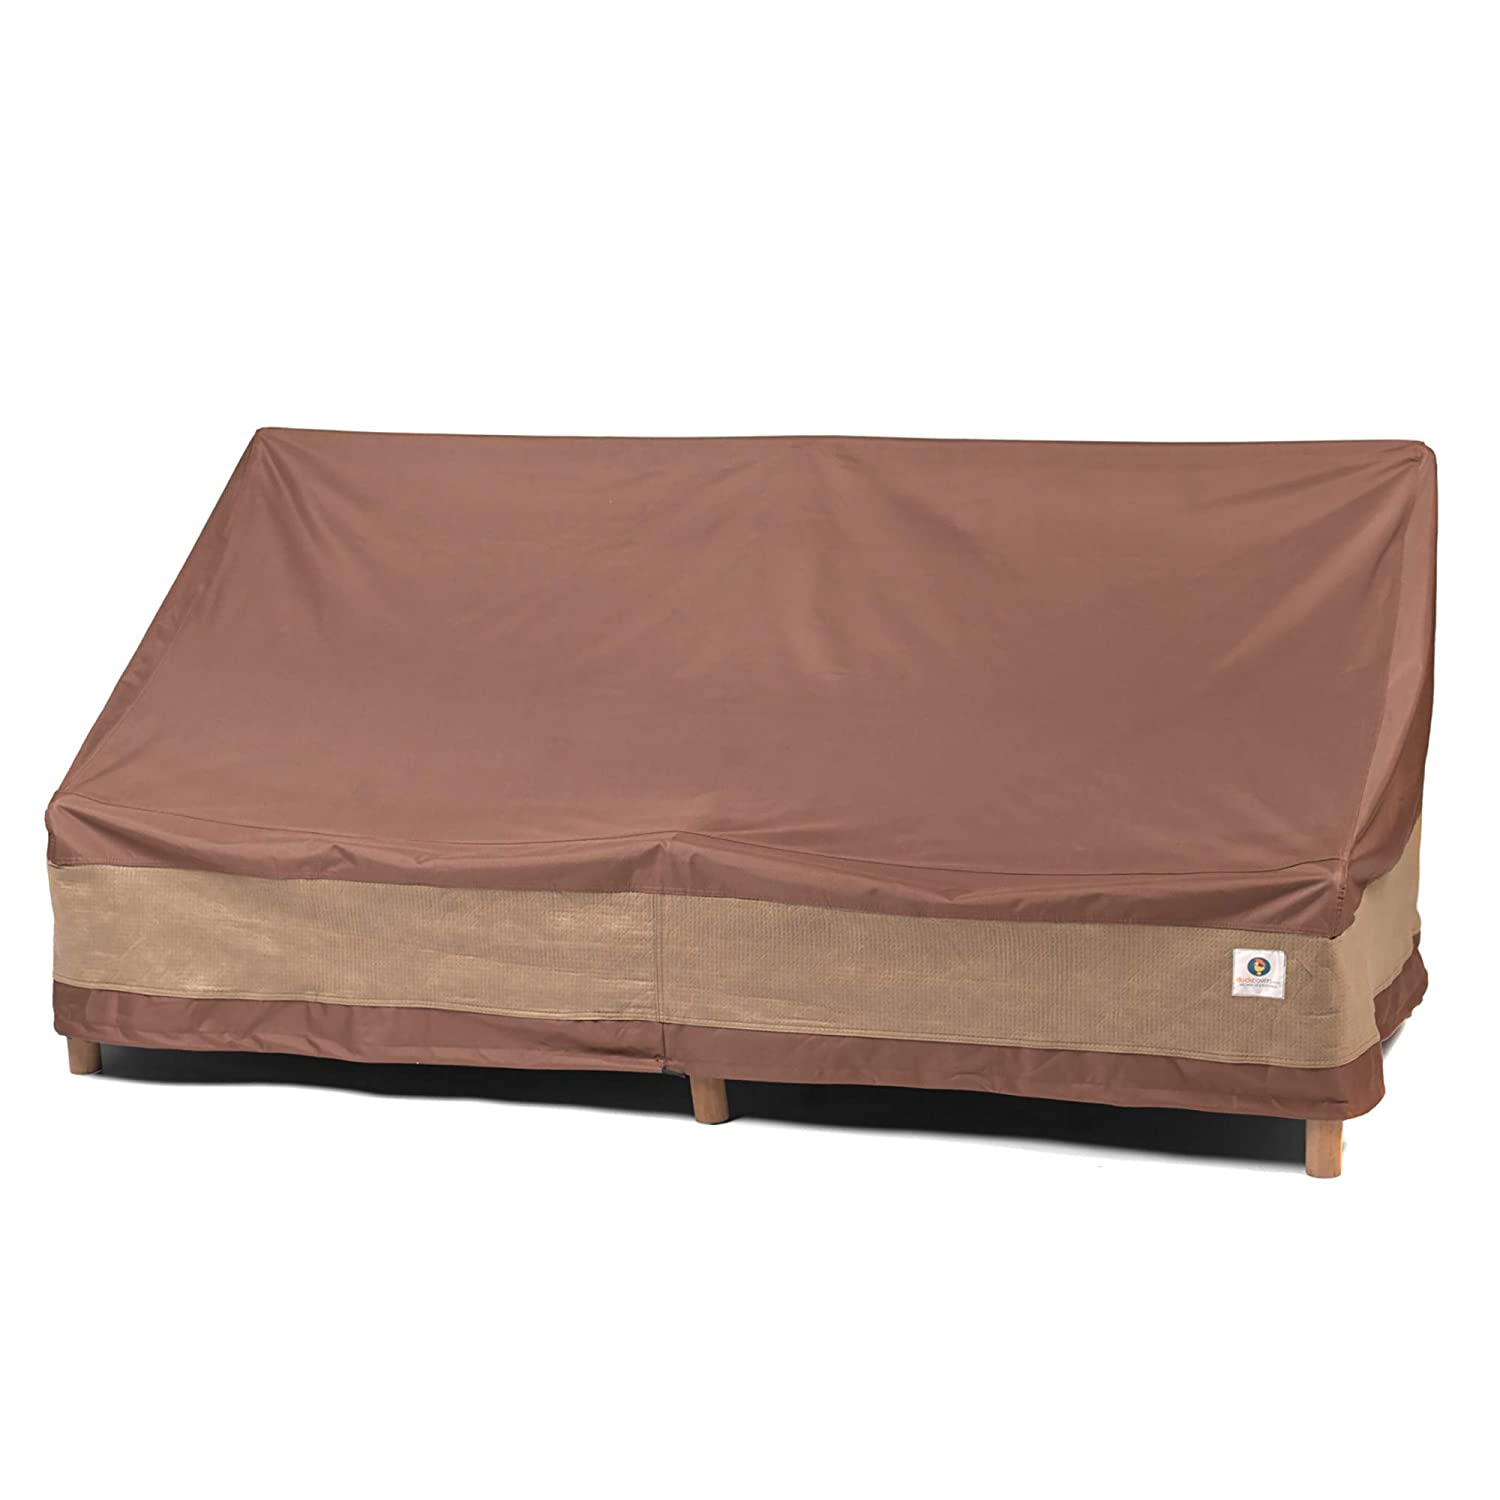 Duck Covers Ultimate Patio Sofa Cover, 93-Inch